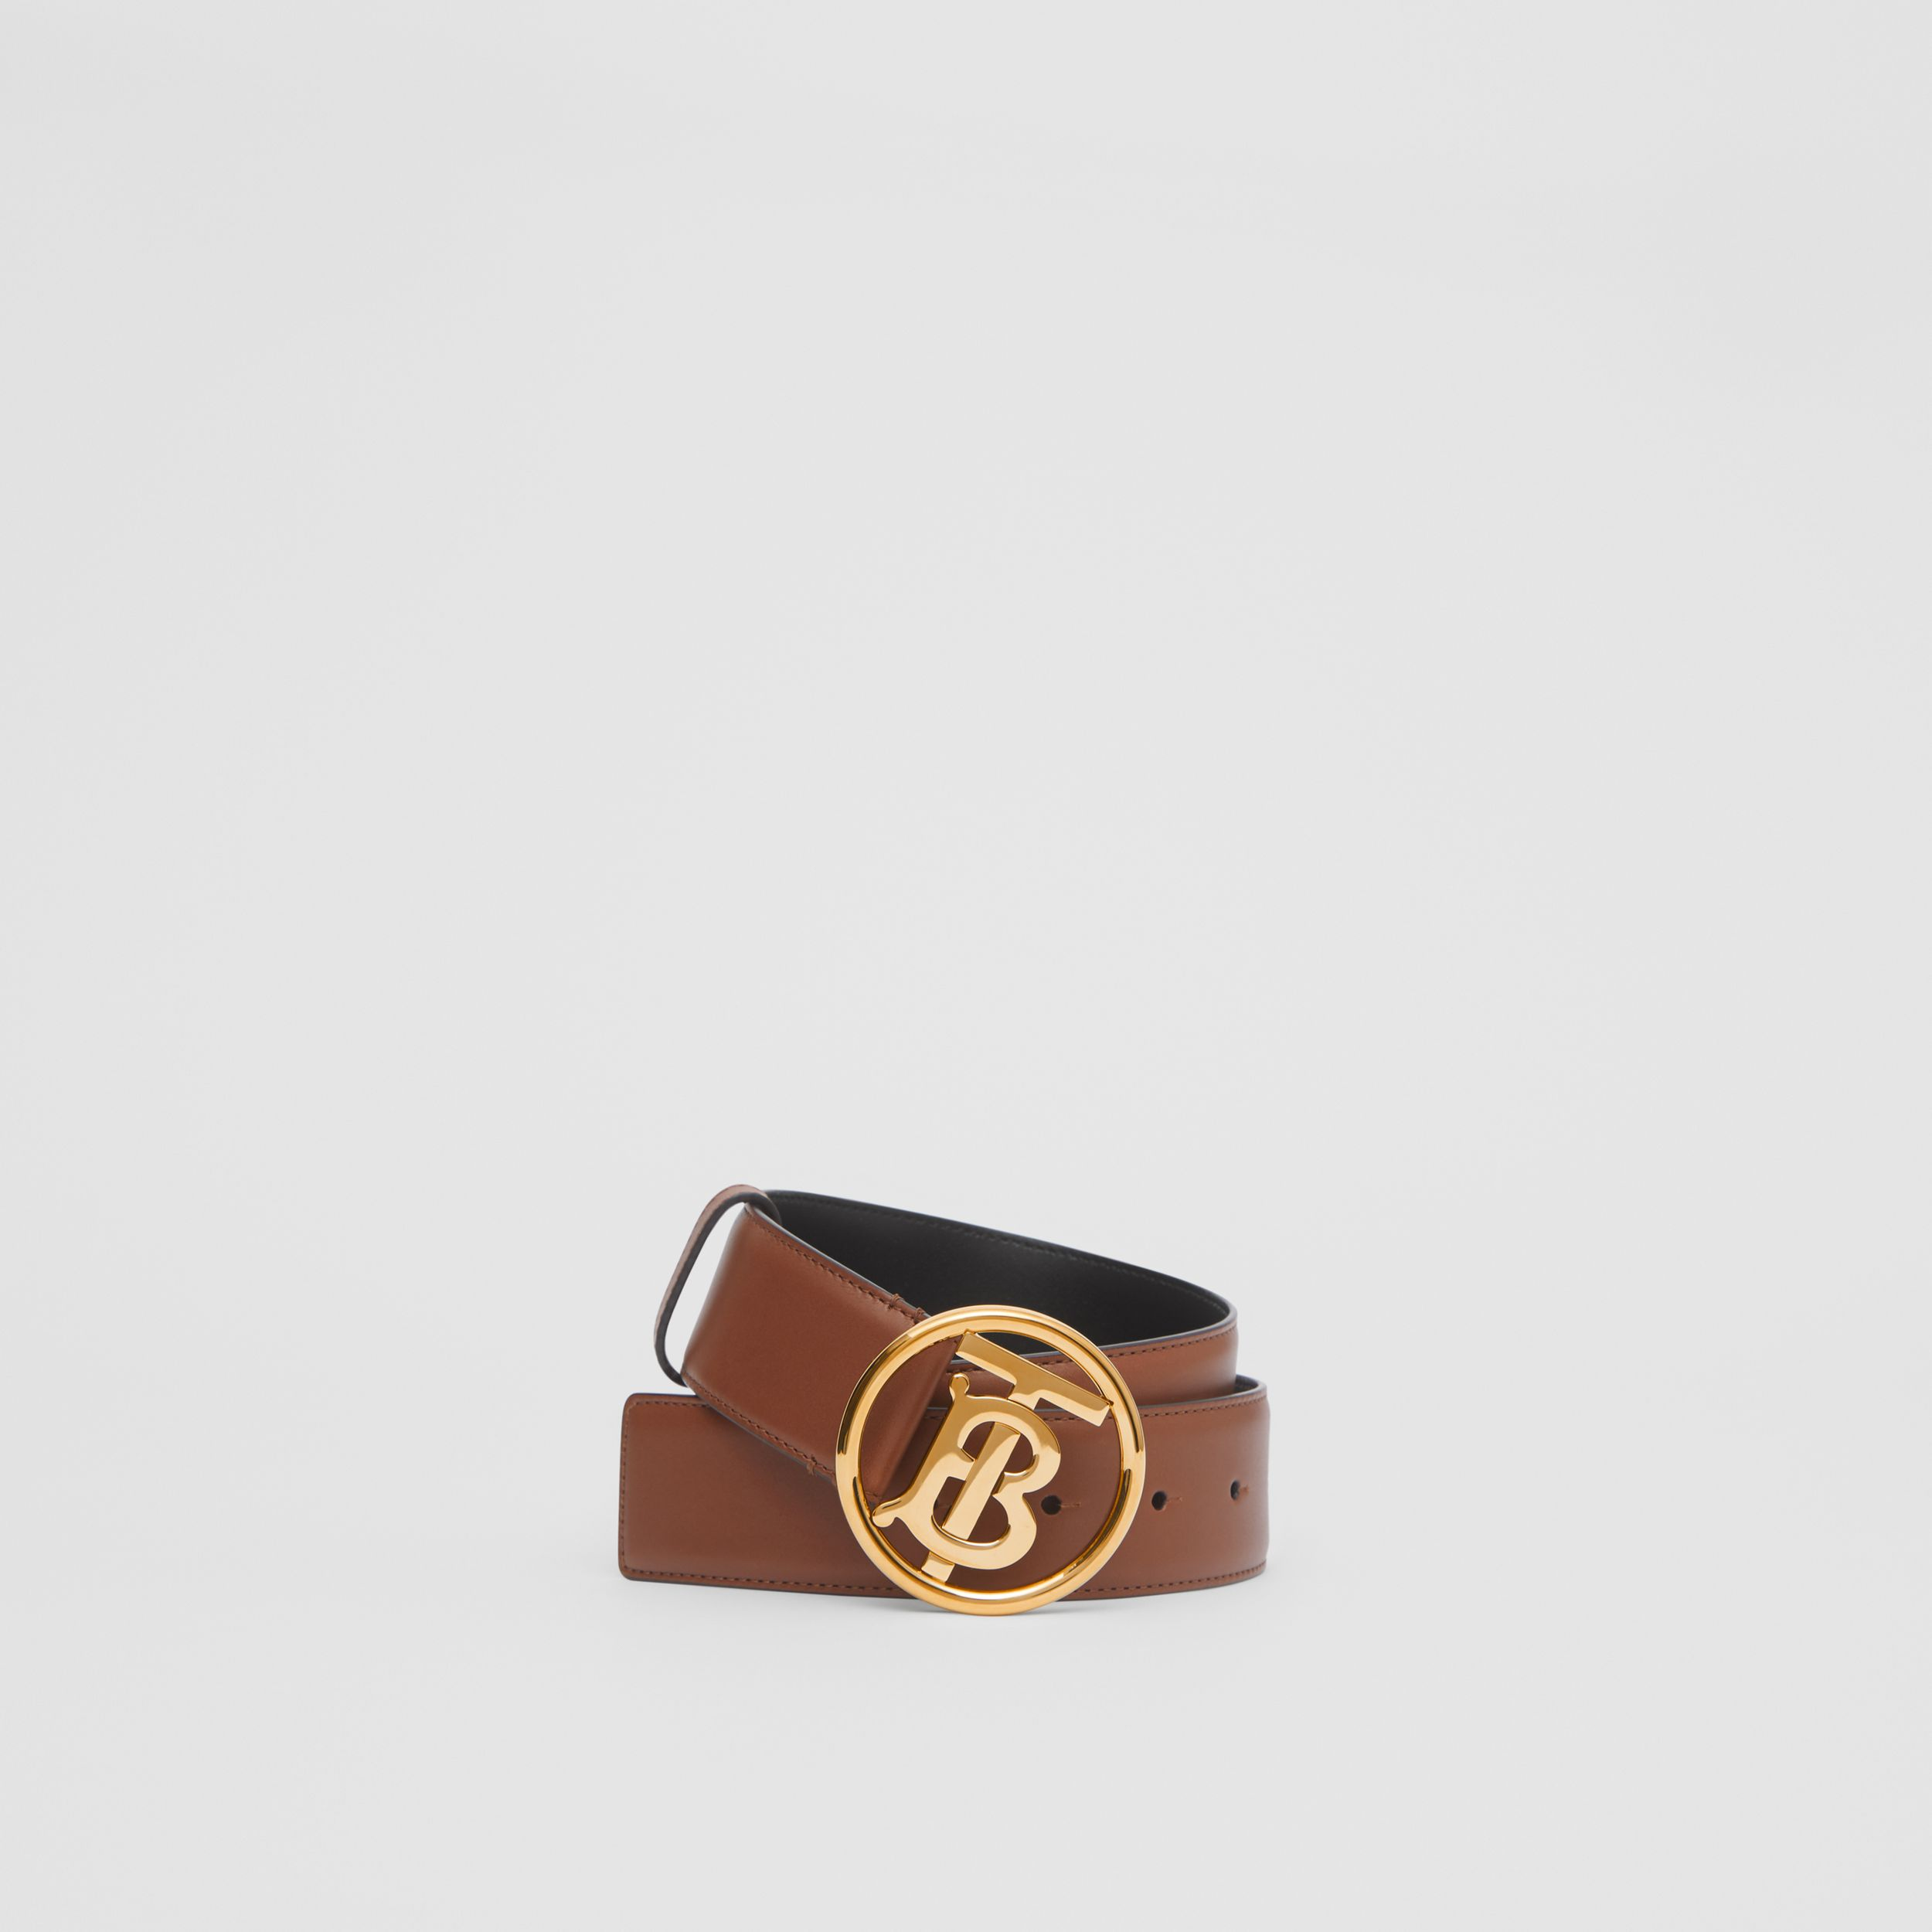 Monogram Motif Leather Belt in Tan/antique Dark Brass - Women | Burberry Hong Kong S.A.R. - 1